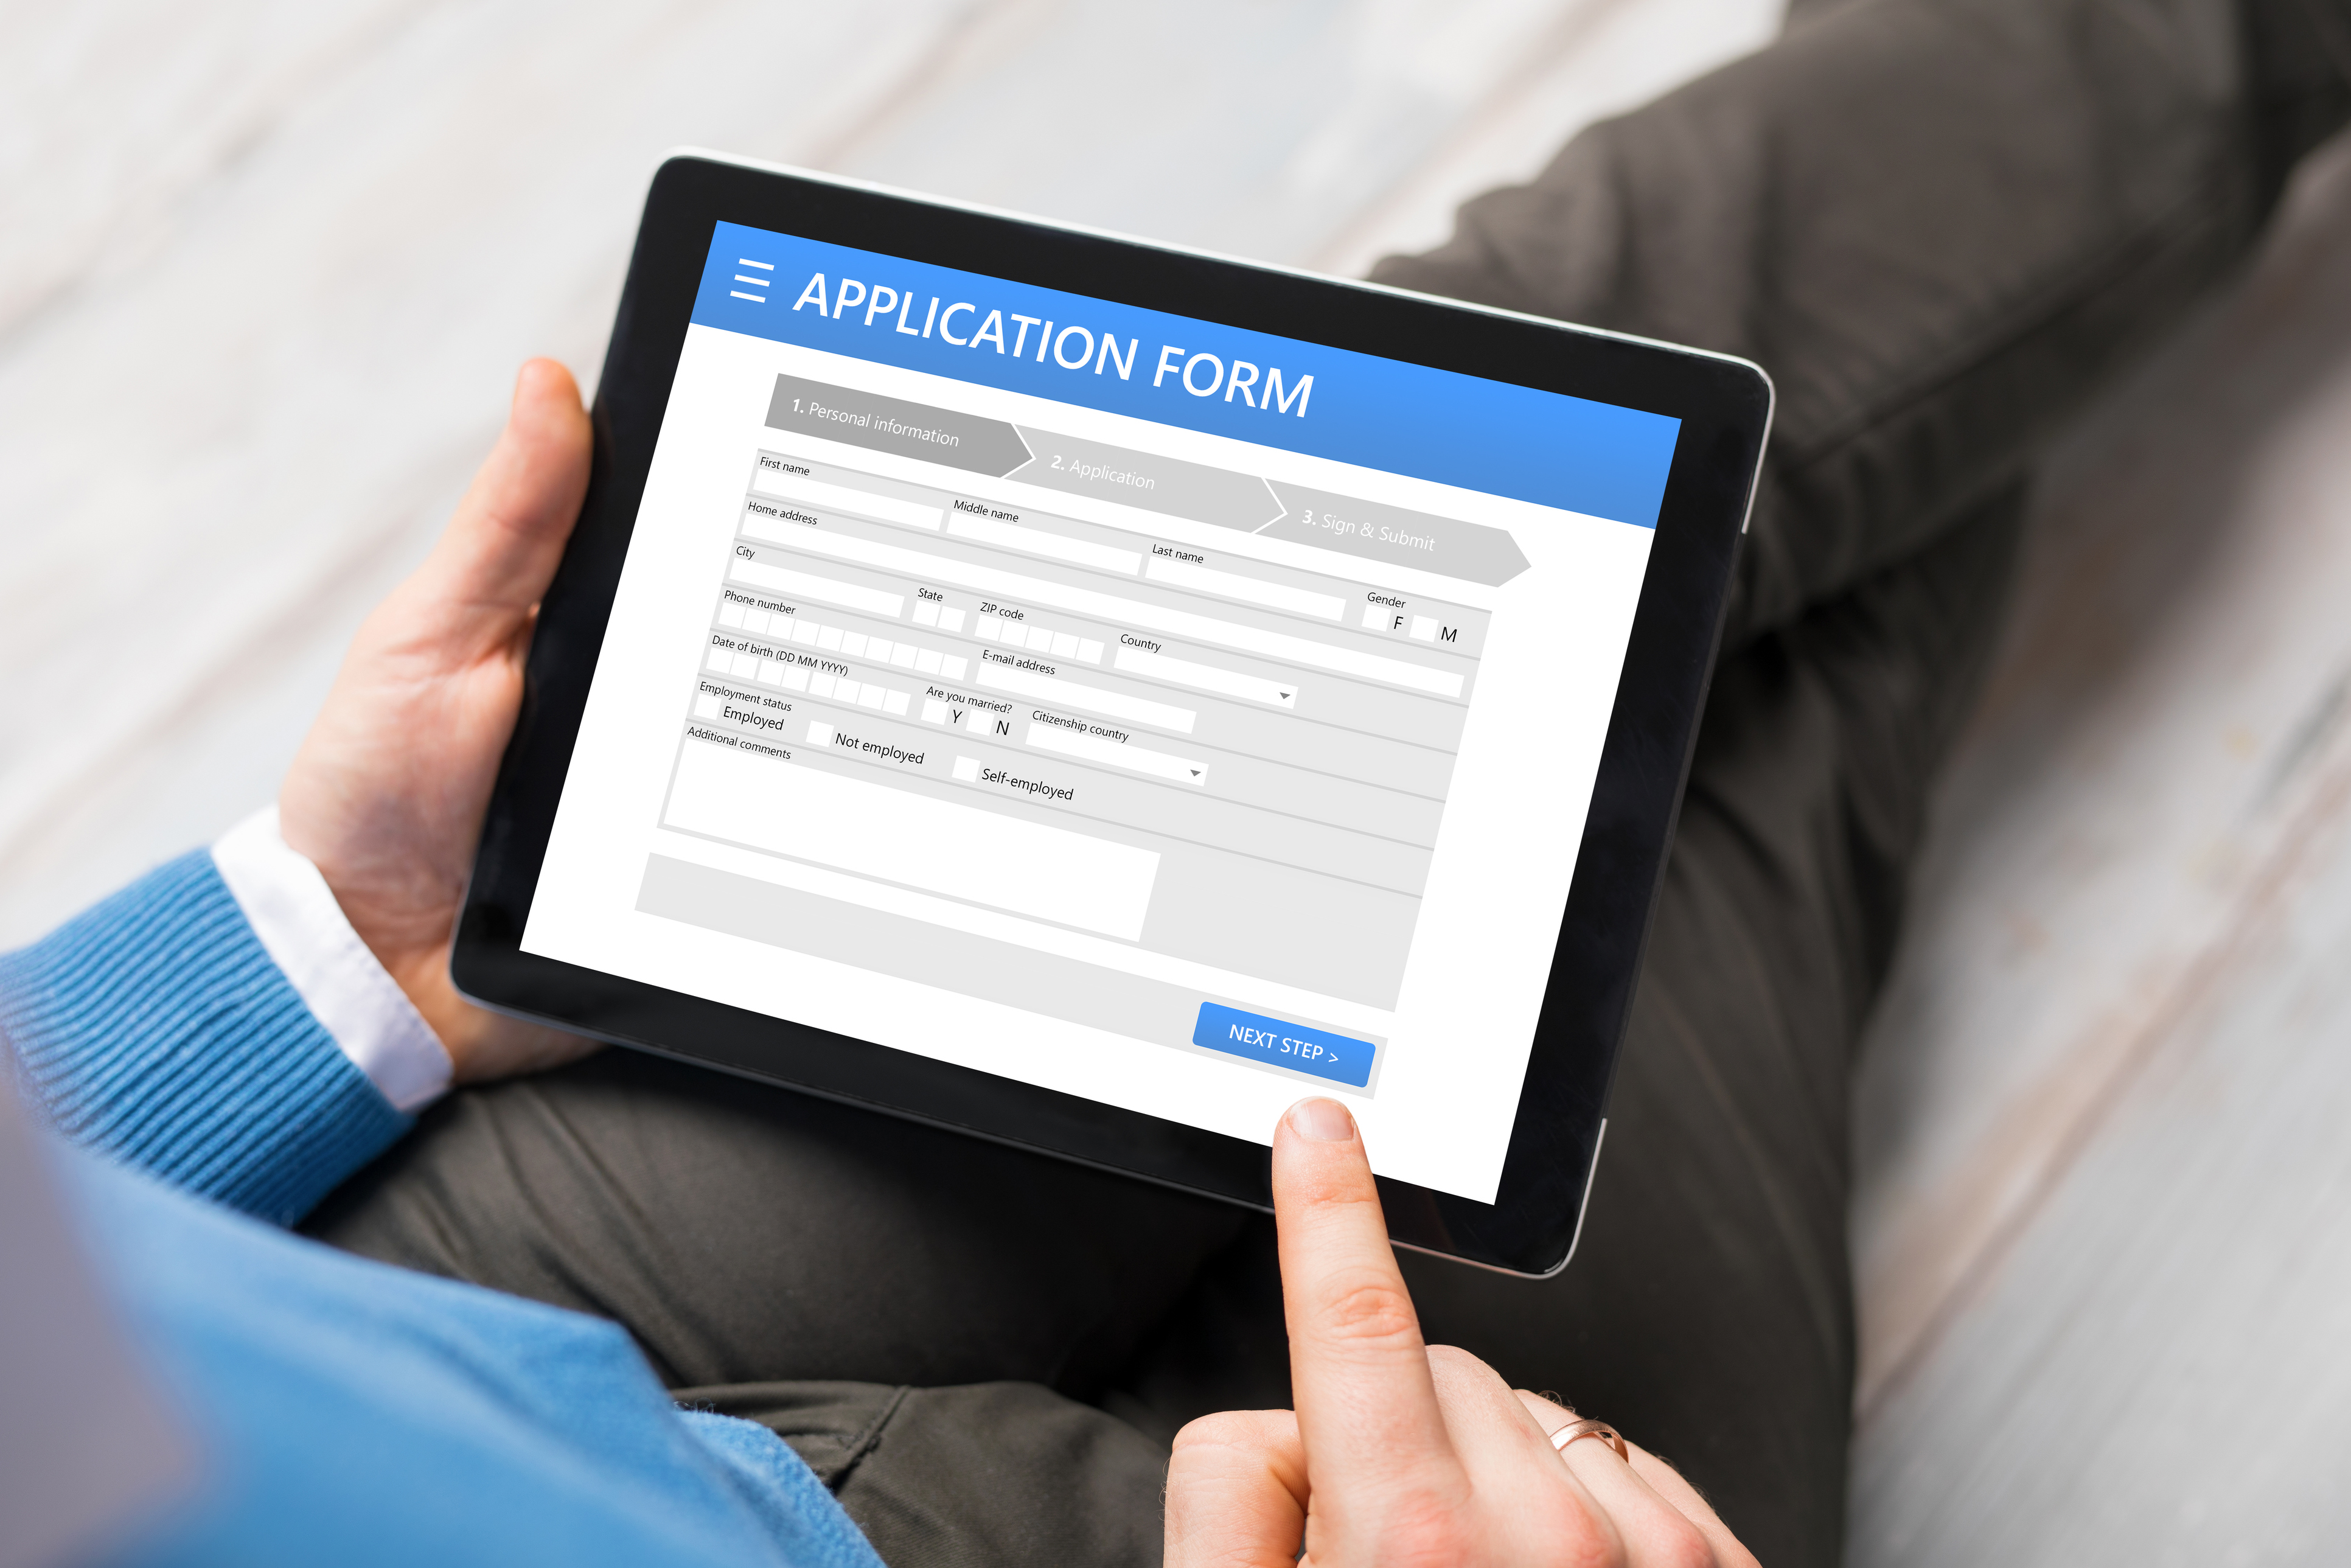 Personal device with an application form on it